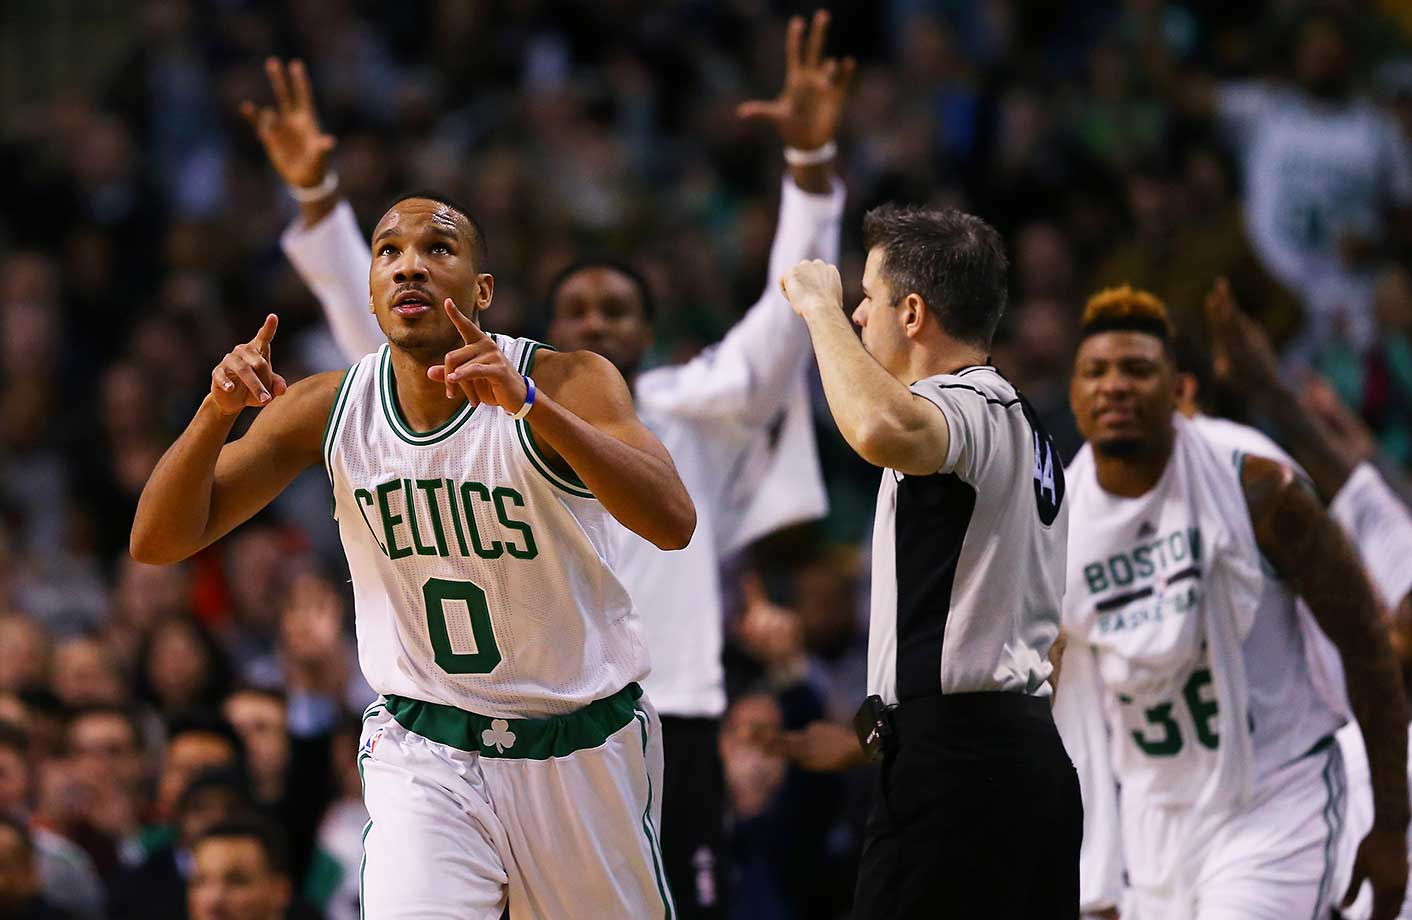 Avery Bradley of the Boston Celtics celebrates after hitting a three-point shot against Portland.